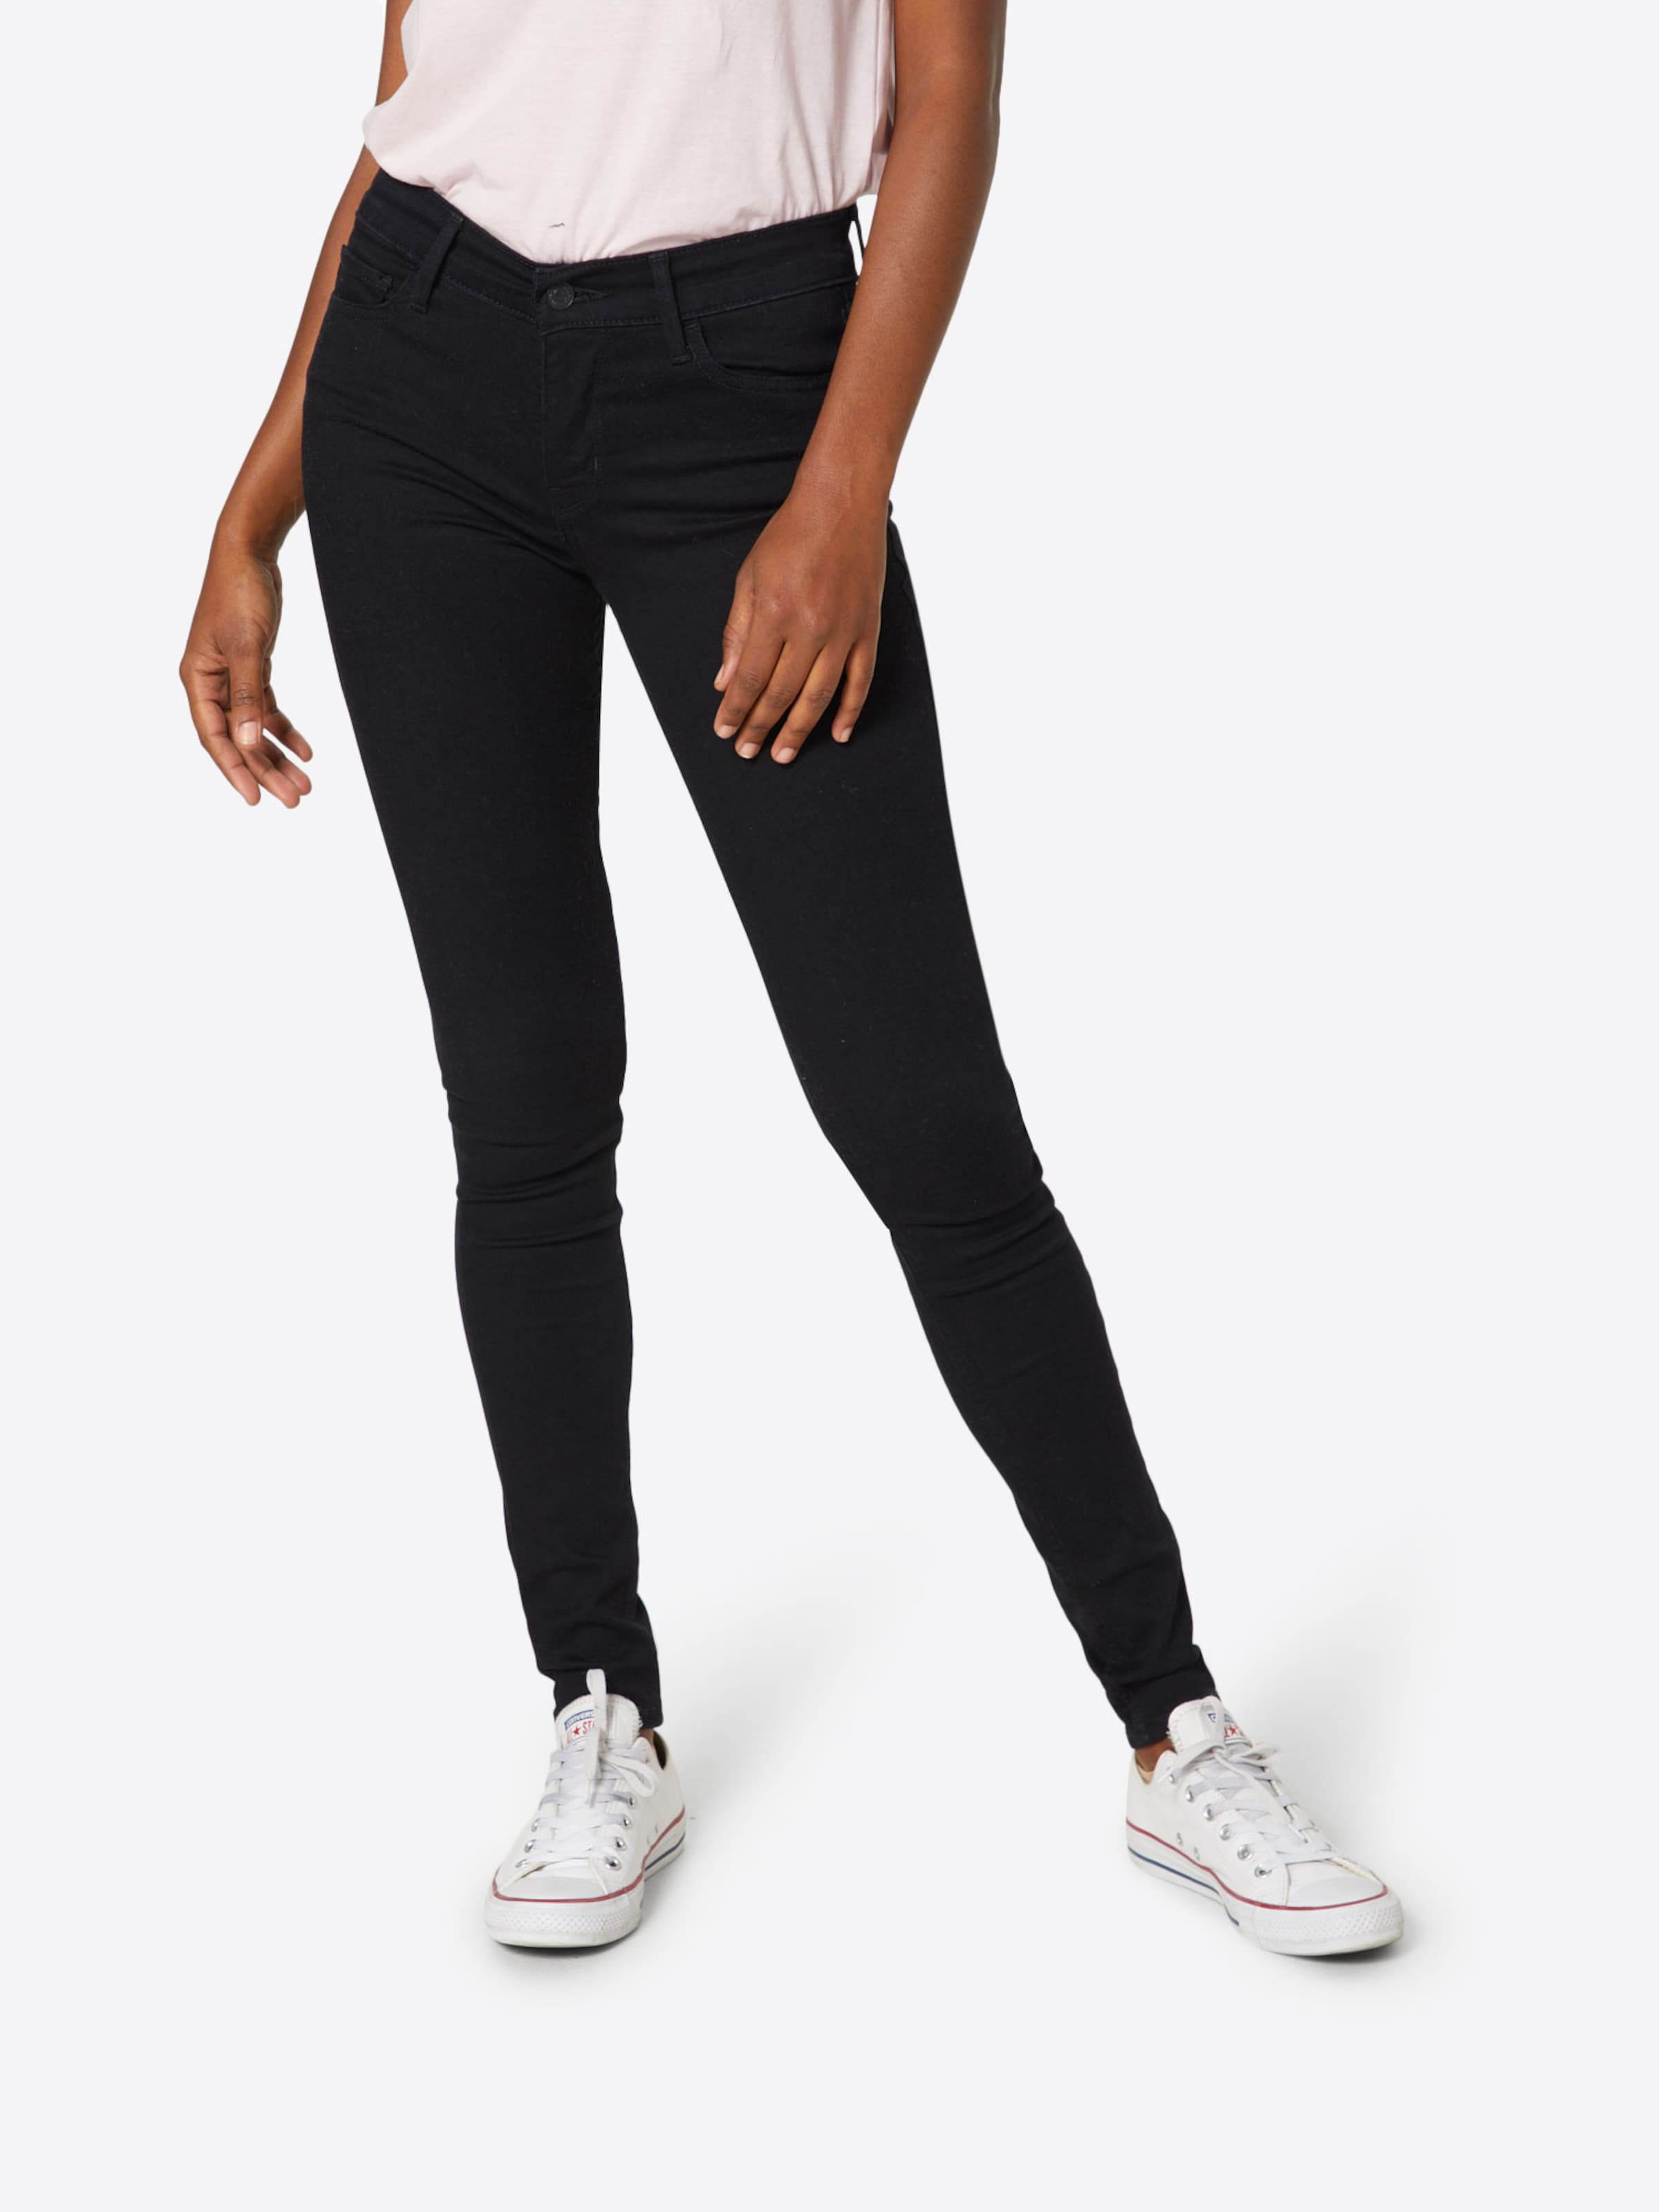 Jeans '710 Denim Levi's Innovation Black Super Skinny' In I7yfgbm6Yv